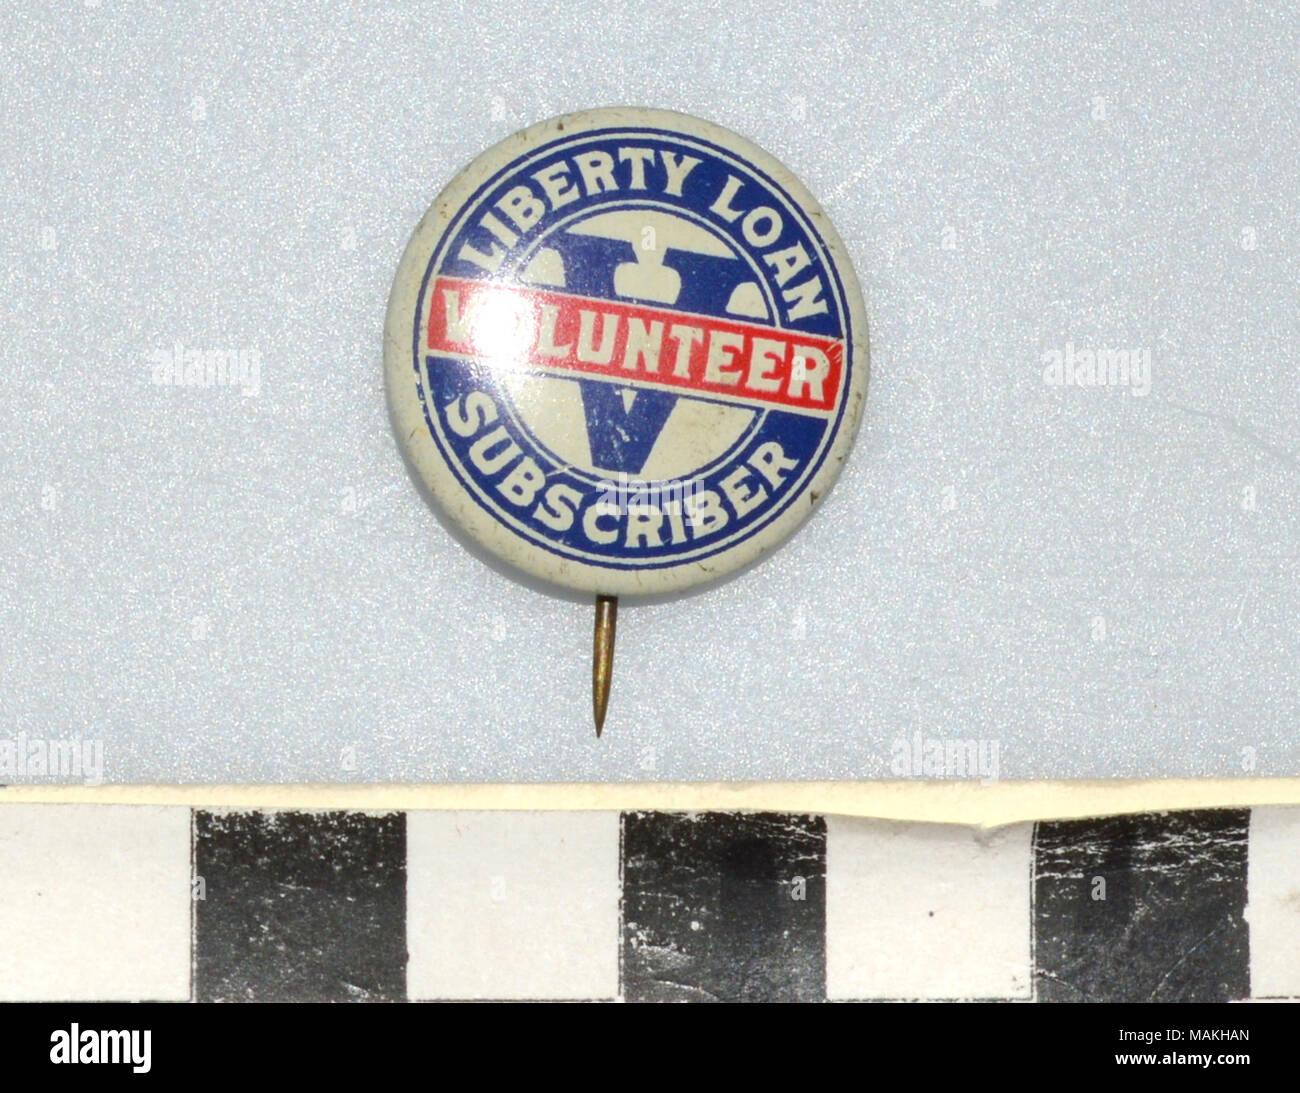 World War I Liberty Loan Volunteer Subscriber pin, round cream colored pin with a blue border and the words 'Liberty Loan Subscriber' and 'Volunteer' on a red border. Has a large blue 'V' in the center. Given to someone who volunteered for the Liberty Loan program from 1916-1918. Title: World War I Liberty Loan Volunteer Subscriber Pin  . between 1916 and 1919. J.L. Lynch - Stock Image